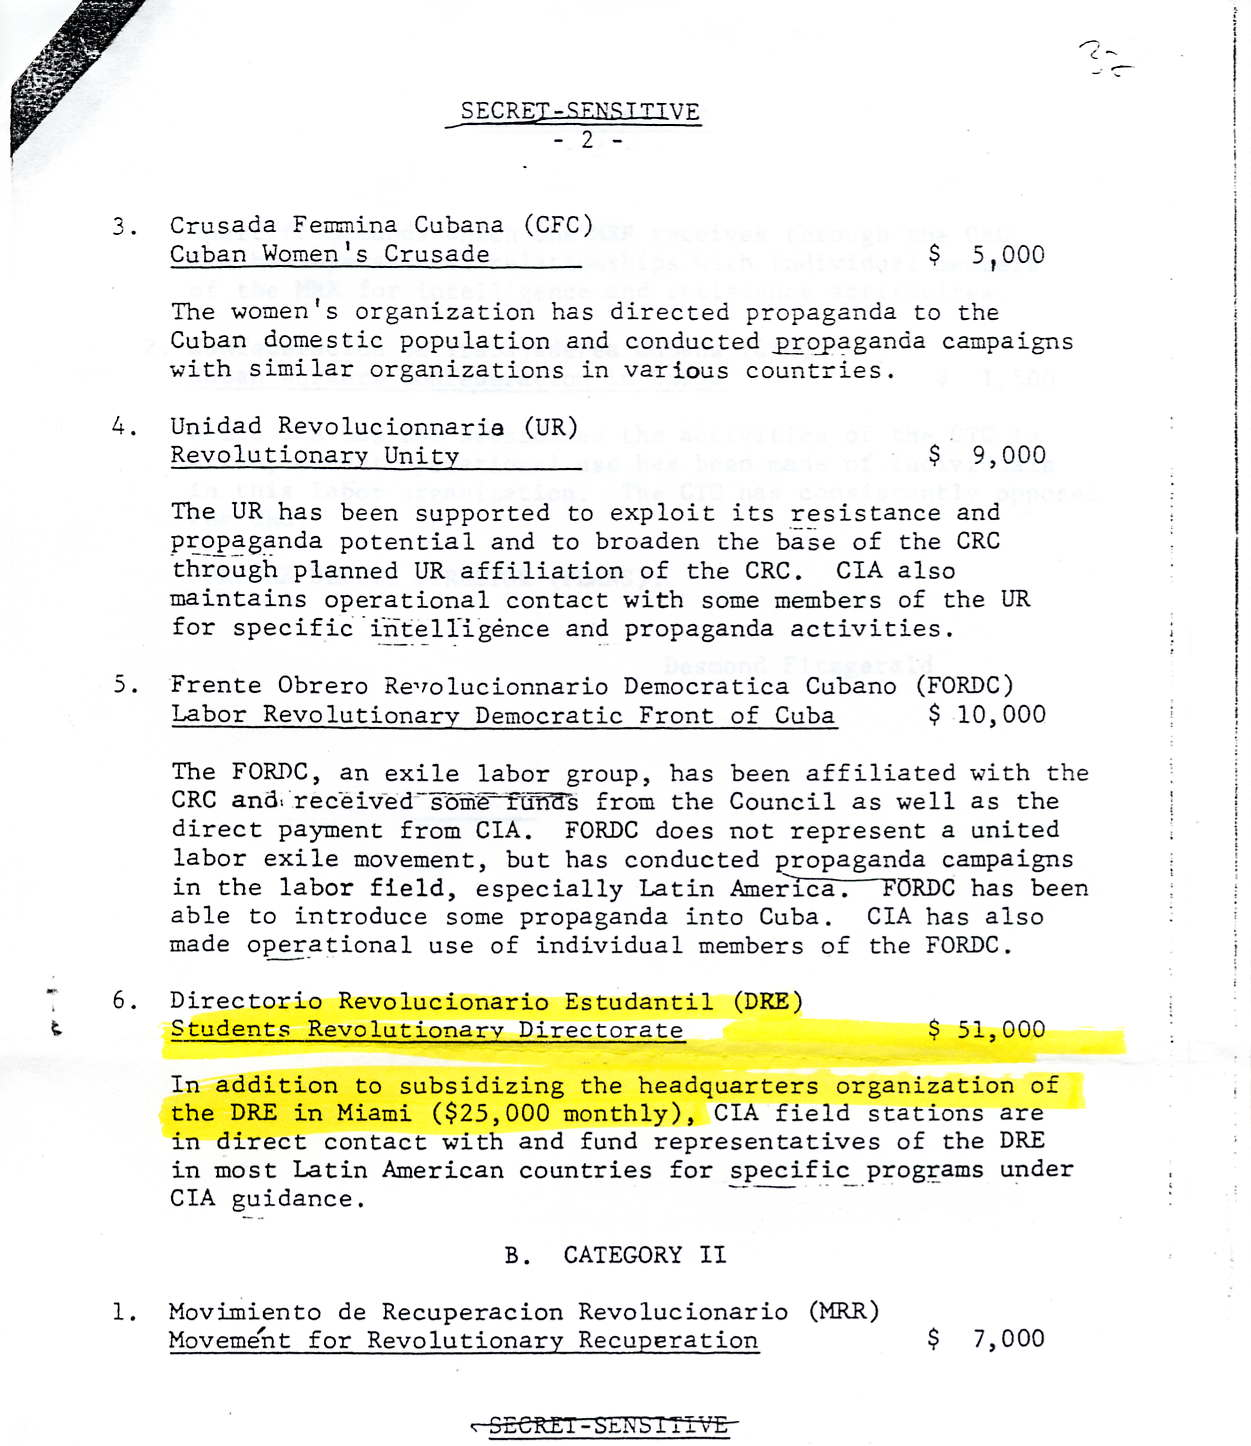 JFK Records Suit Tests CIA Secrecy on Assassination - Just